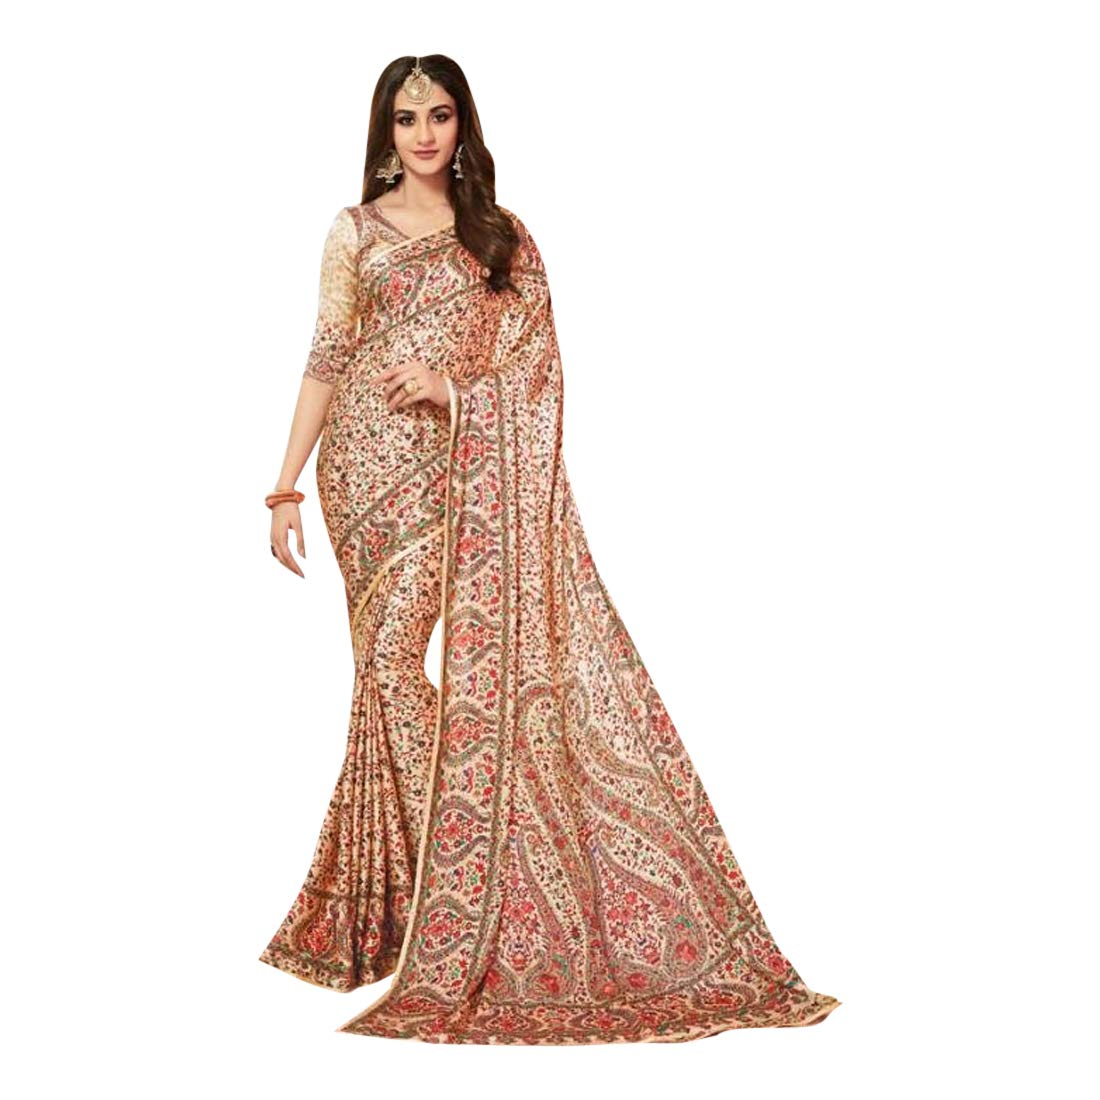 Stylish Indian Designer Sari Swarovski stone work Saree with Blouse for Women 7506